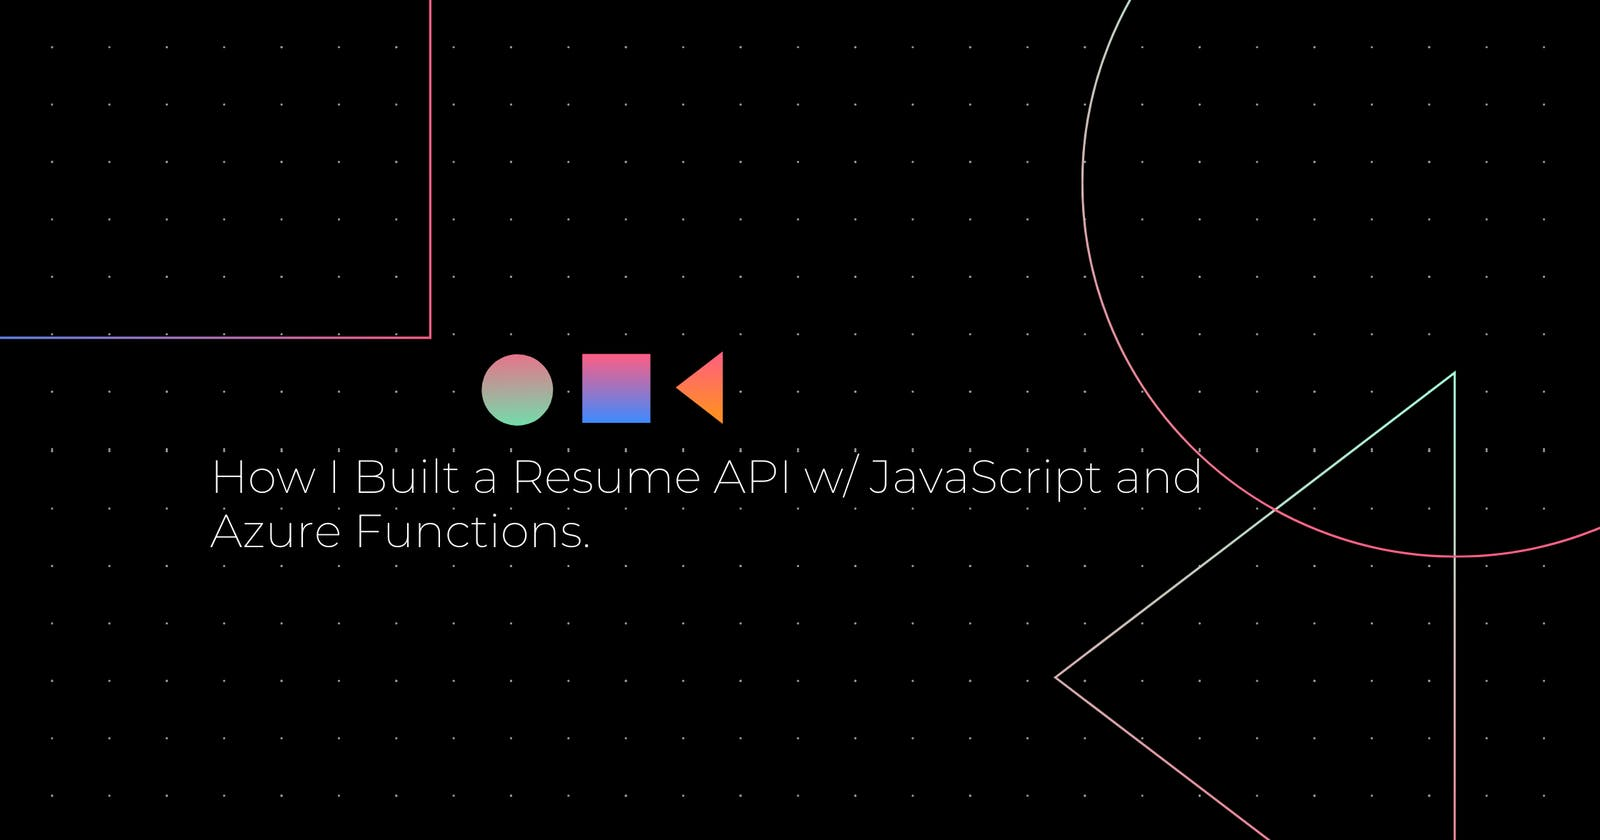 How I Built a Resume API with JavaScript and Azure Functions